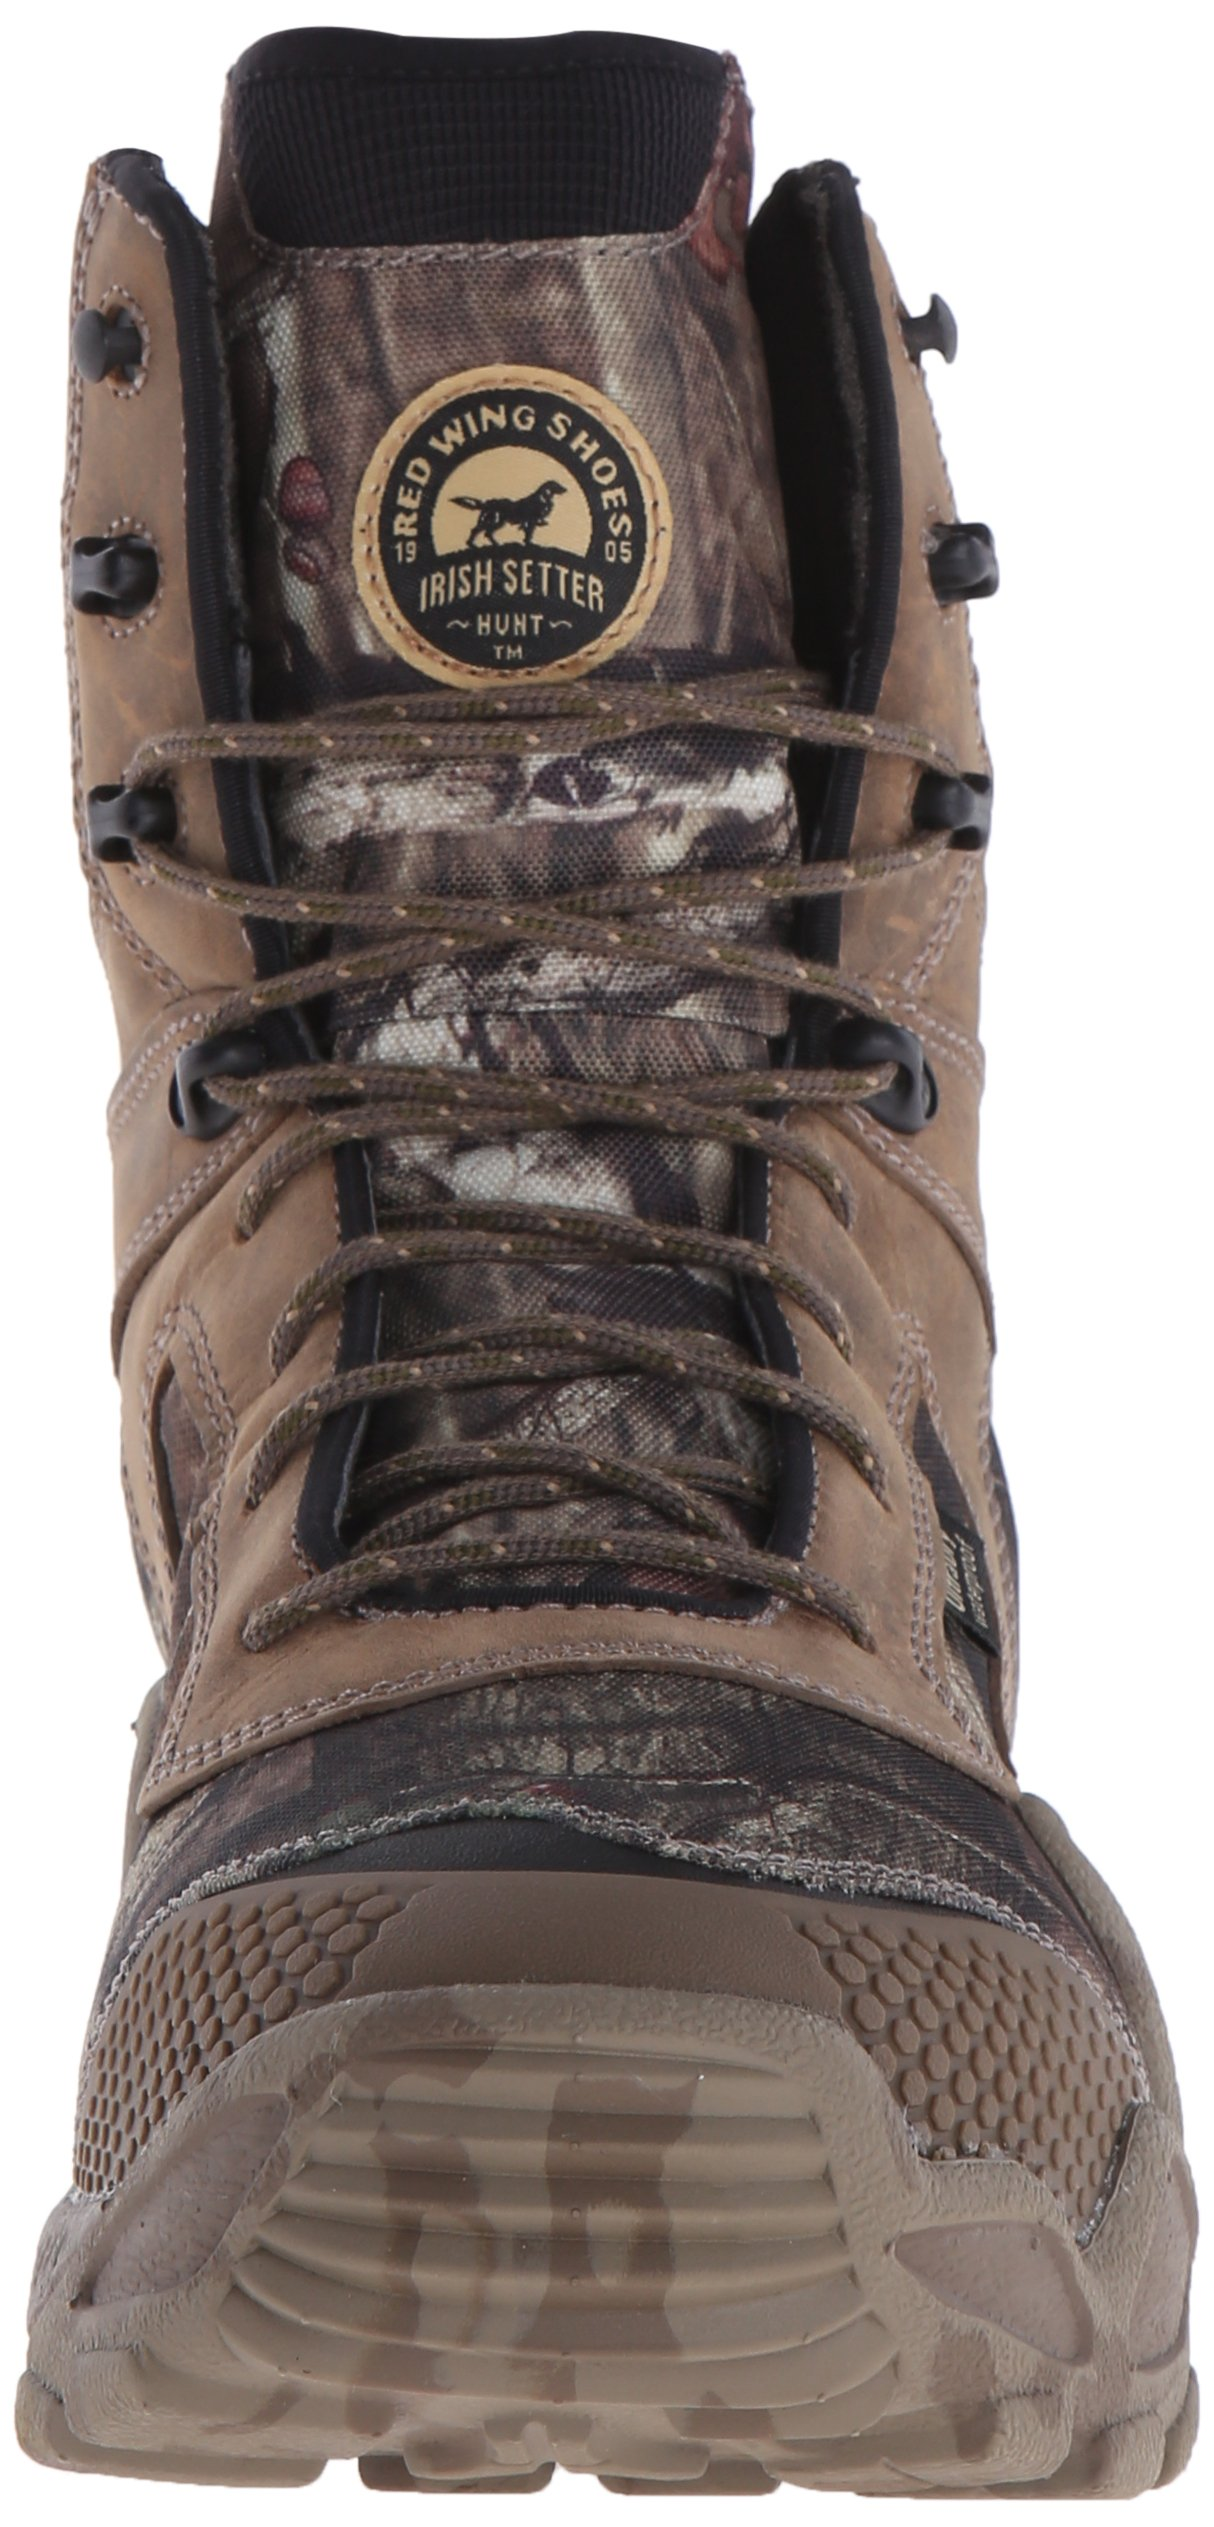 Irish Setter Men's 2868 Vaprtrek Waterproof 8'' Hunting Boot, Mossy Oak Break Up Infinity Camouflage,10 EE US by Irish Setter (Image #4)